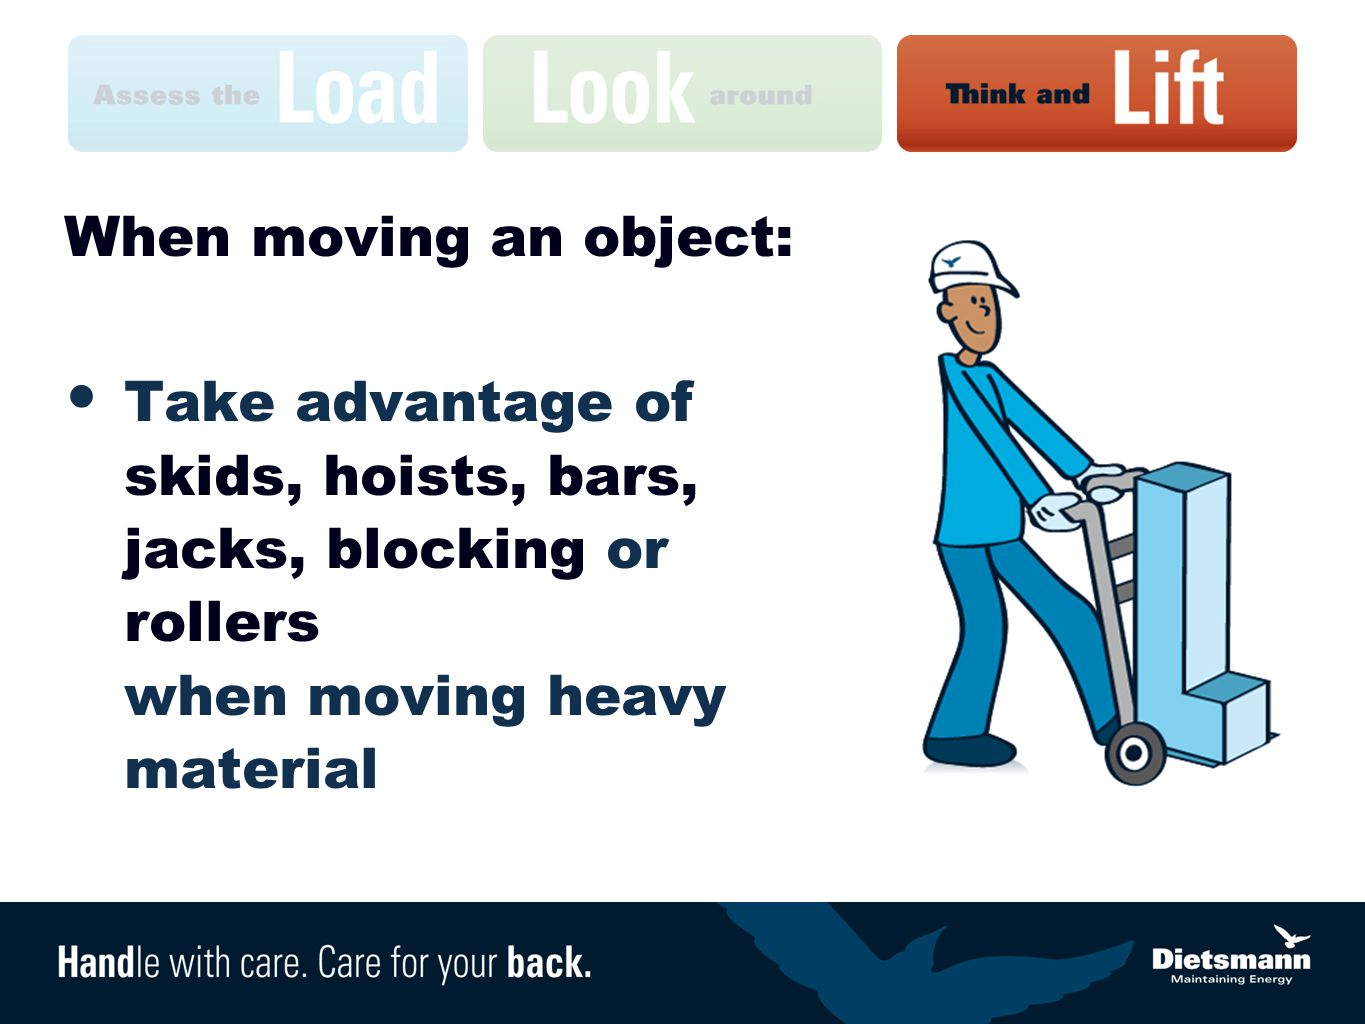 When moving an object: Take advantage of skids, hoists, bars, jacks, blocking or rollers when moving heavy material